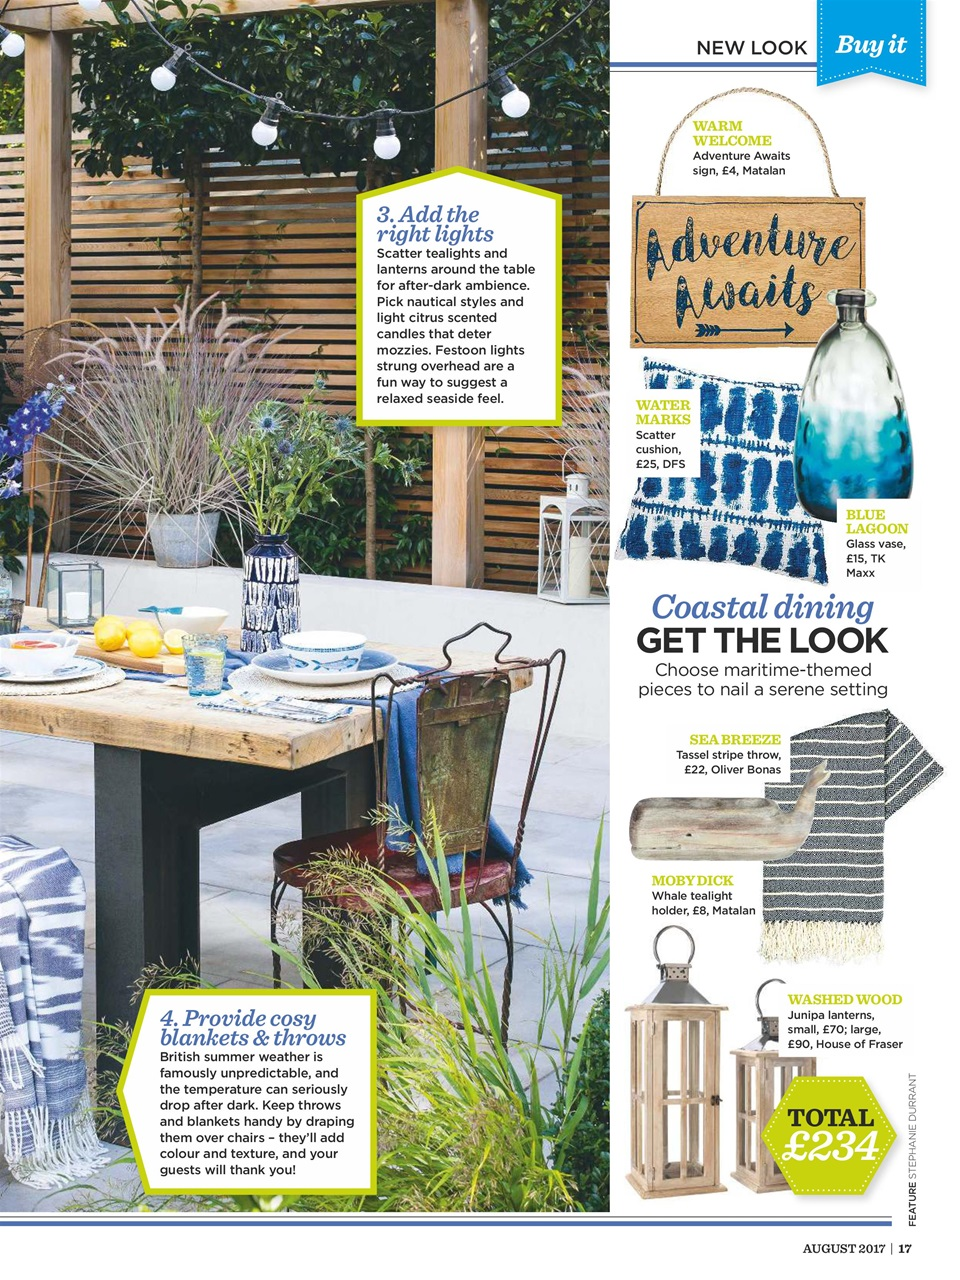 Style at home magazine august 2017 subscriptions for Style at home august 2017